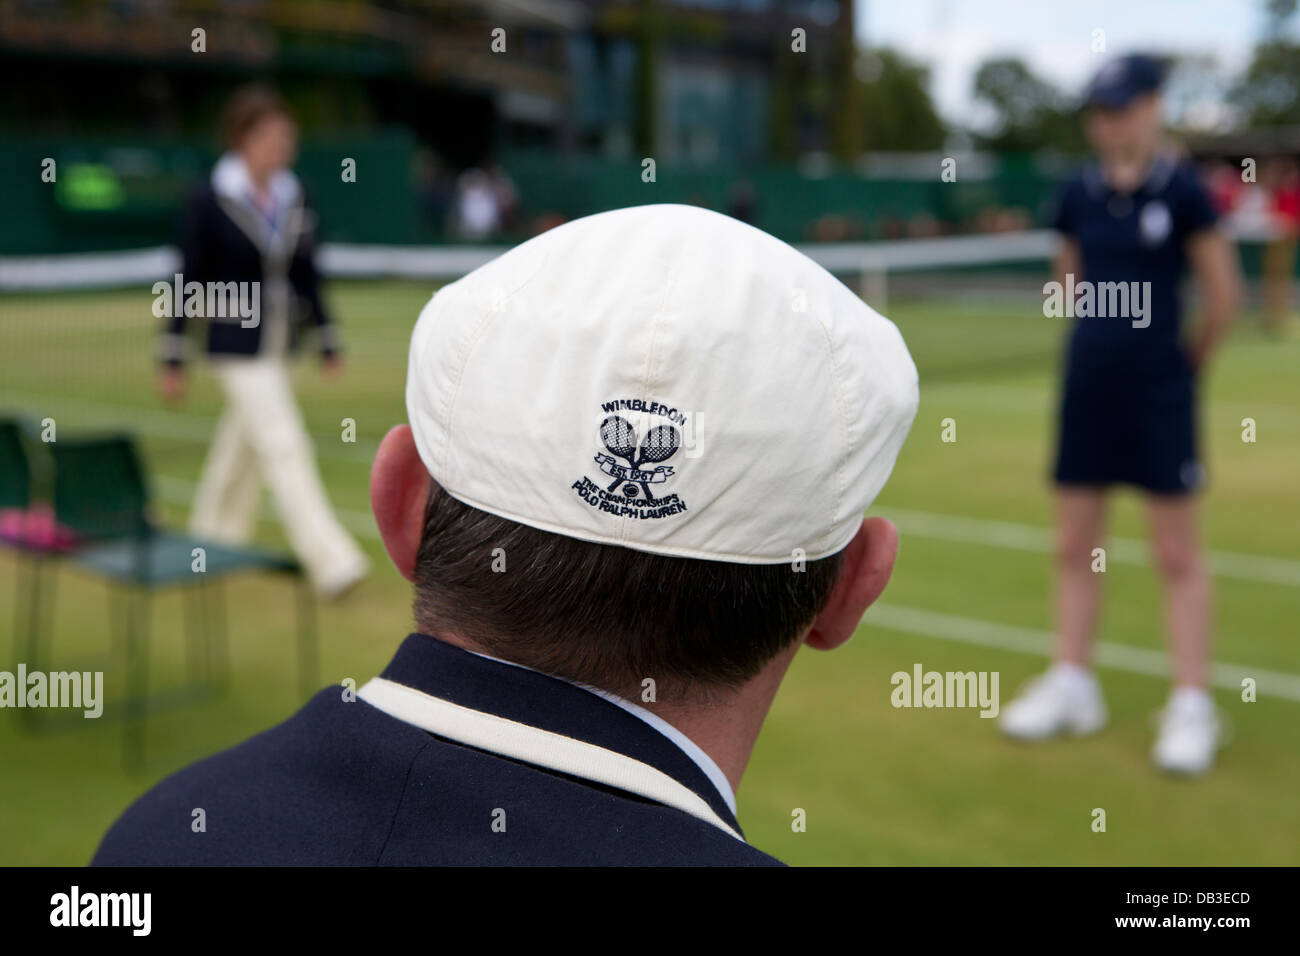 Ralph Lauren logo on line judges cap The Championships Wimbledon 2012 - Stock Image